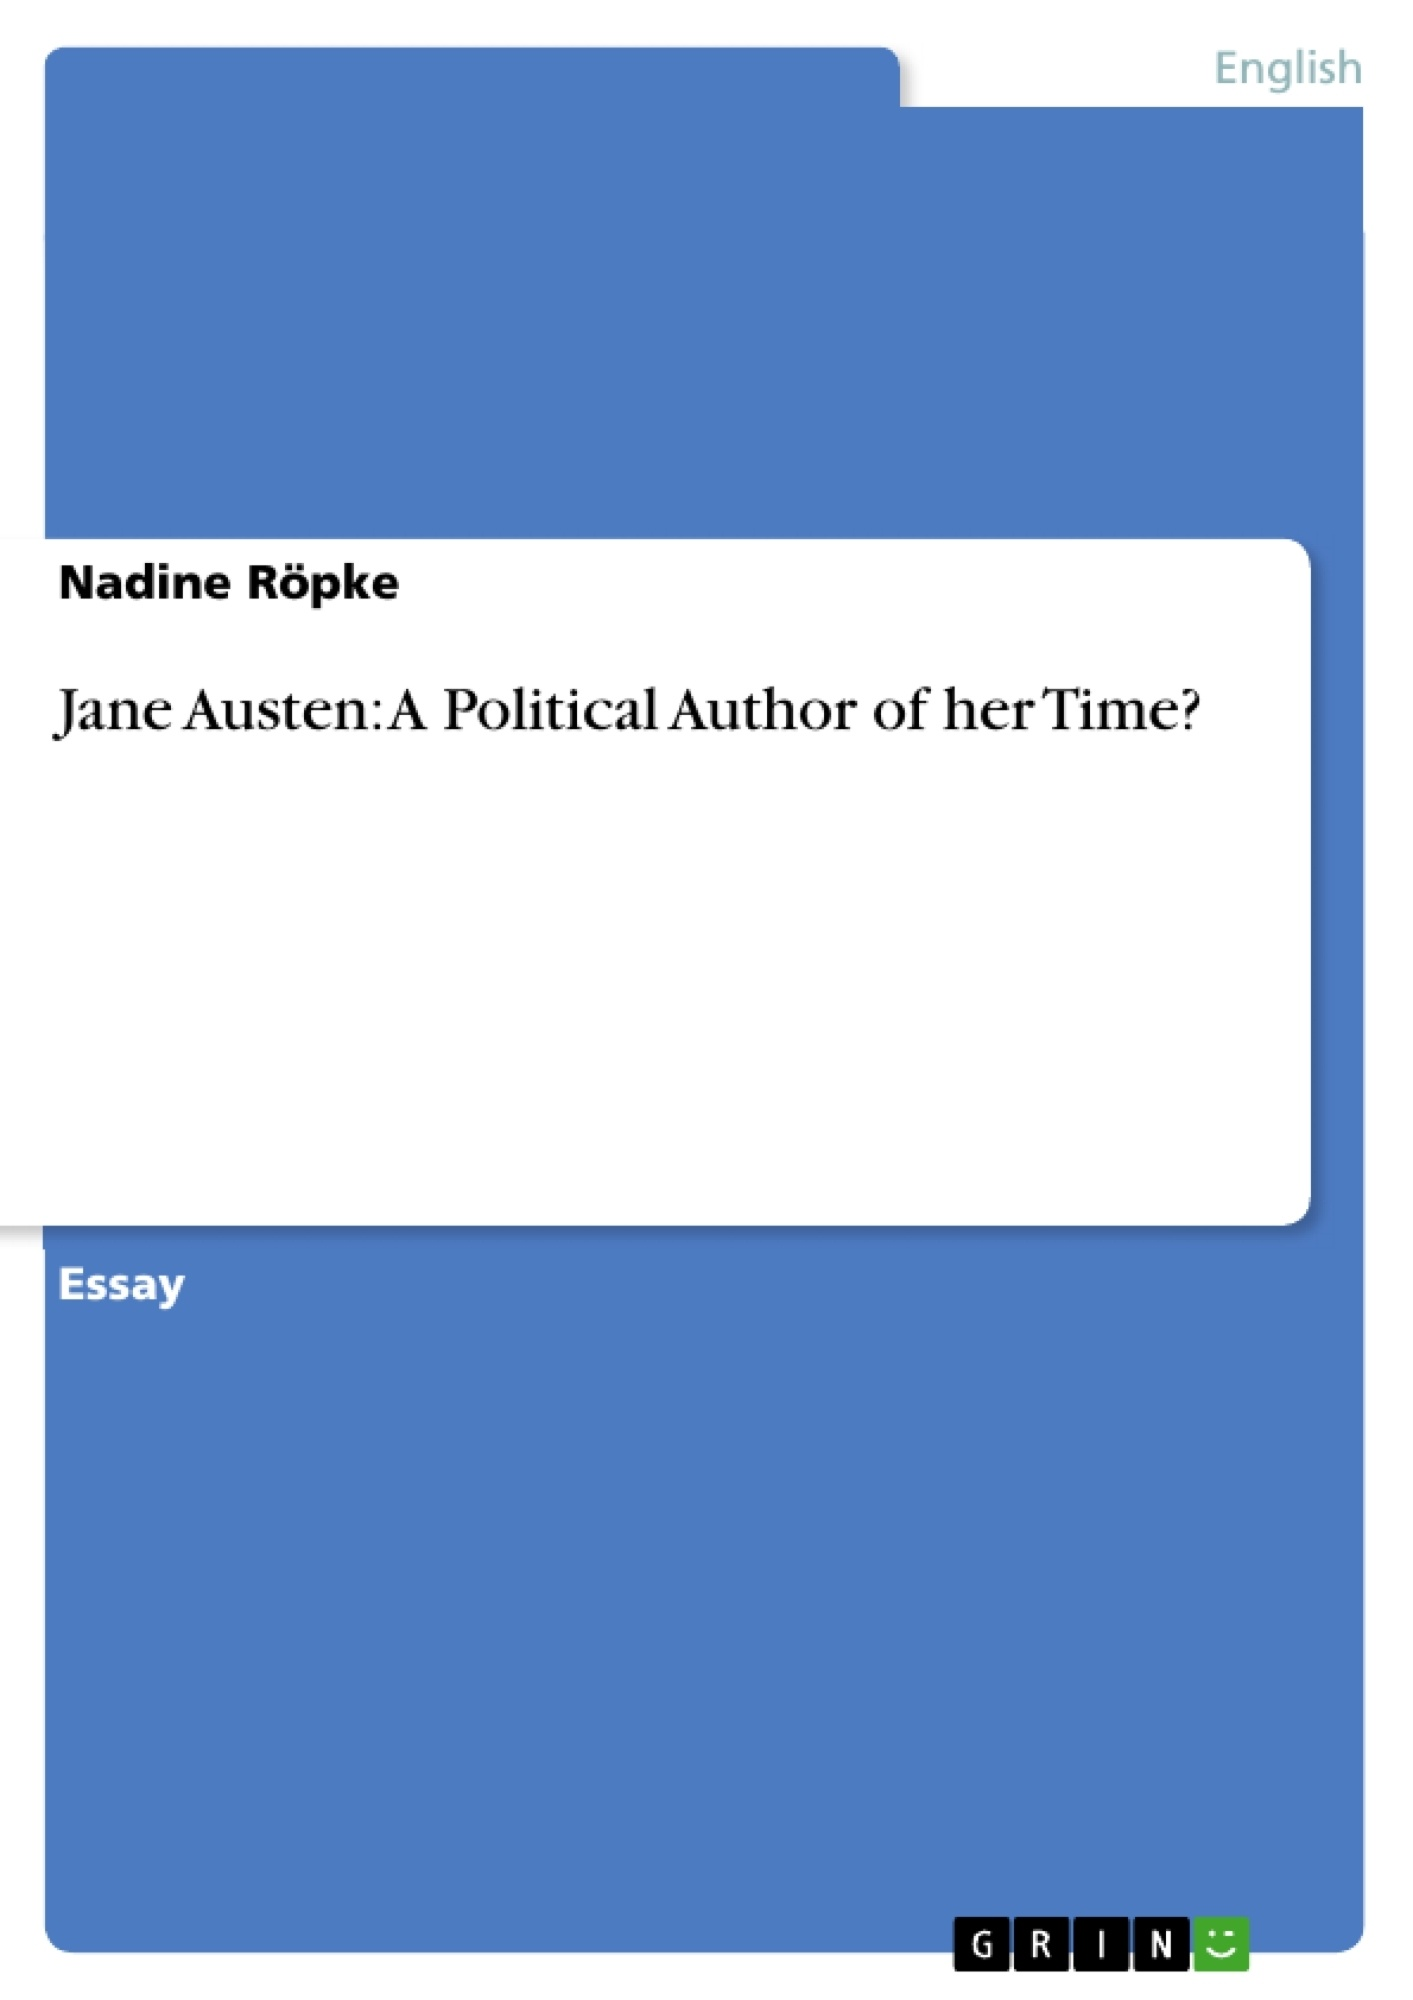 Jane Austen: A Political Author of her Time?